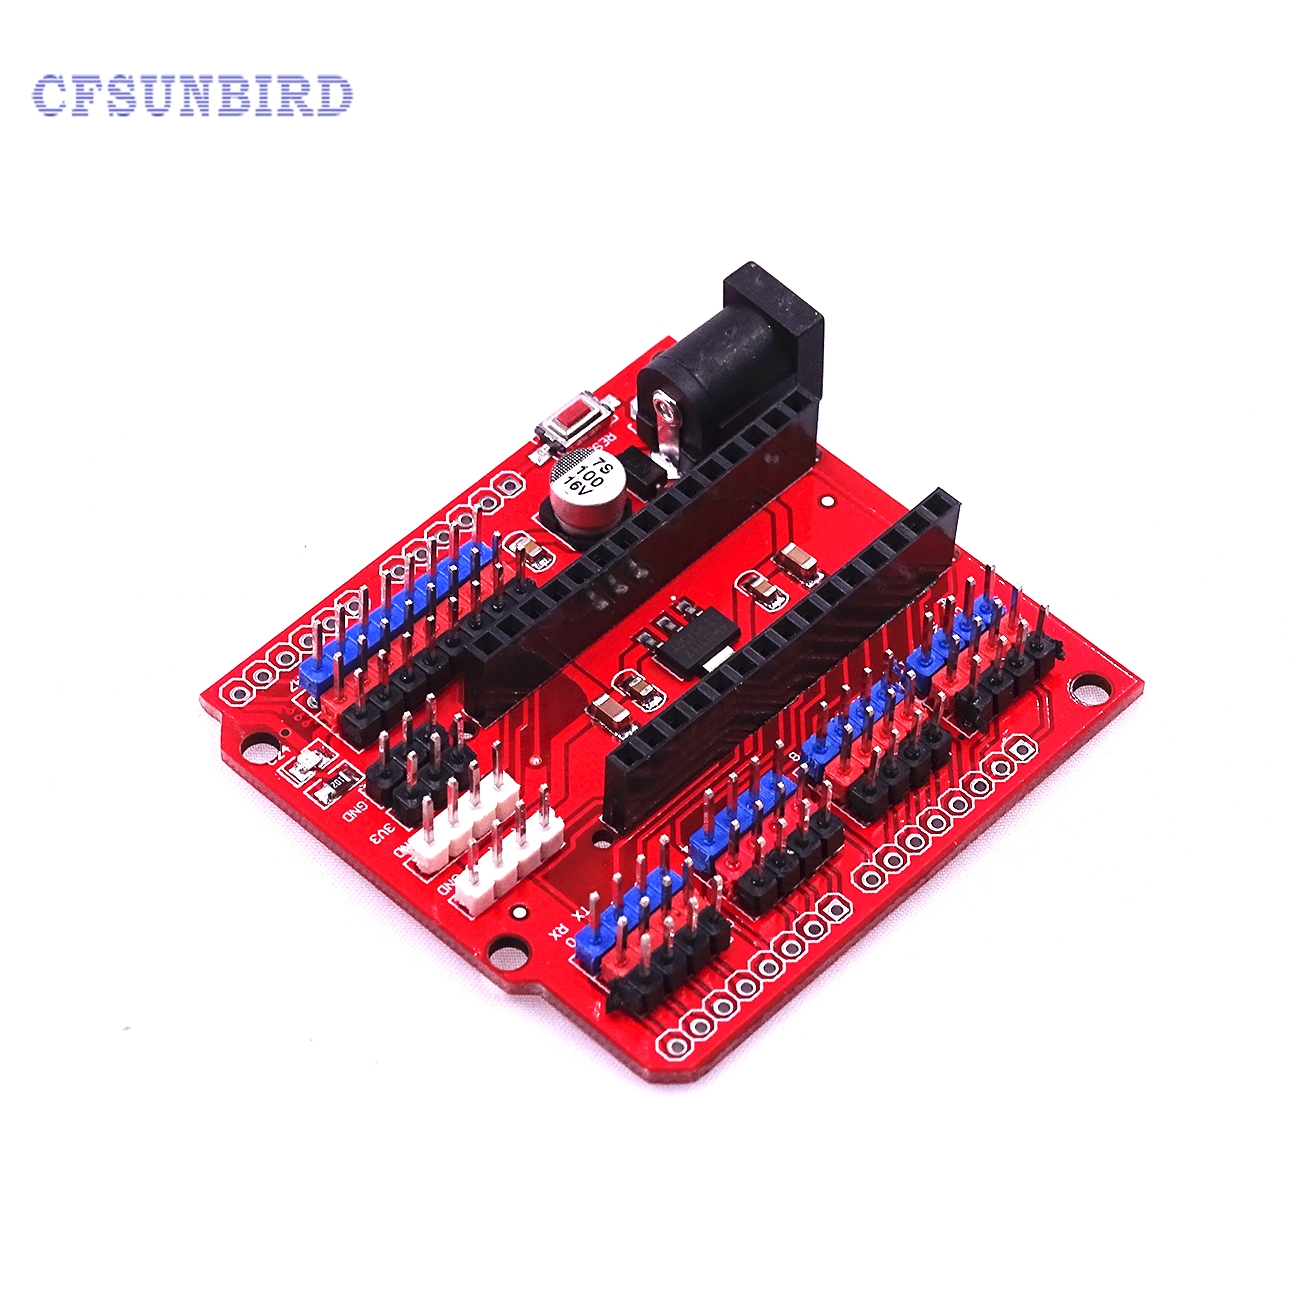 все цены на  CFsunbird NANO 3.0 Shield Expansion Board Expansion Sensor Shield Module for Arduino UNO Nano 3.0  онлайн